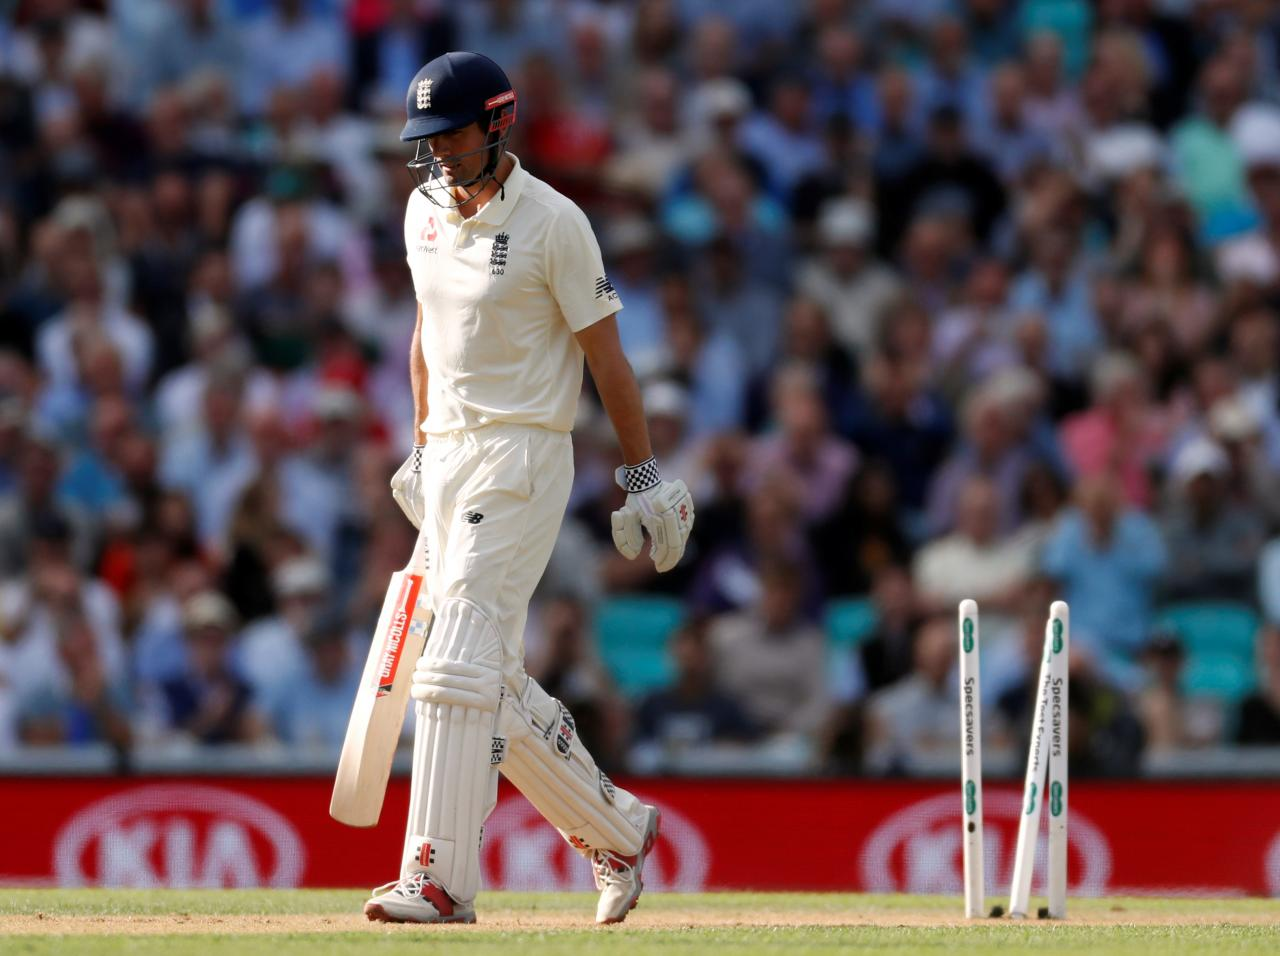 England 198 for seven against India at stump on day 1 of fifth Test in London